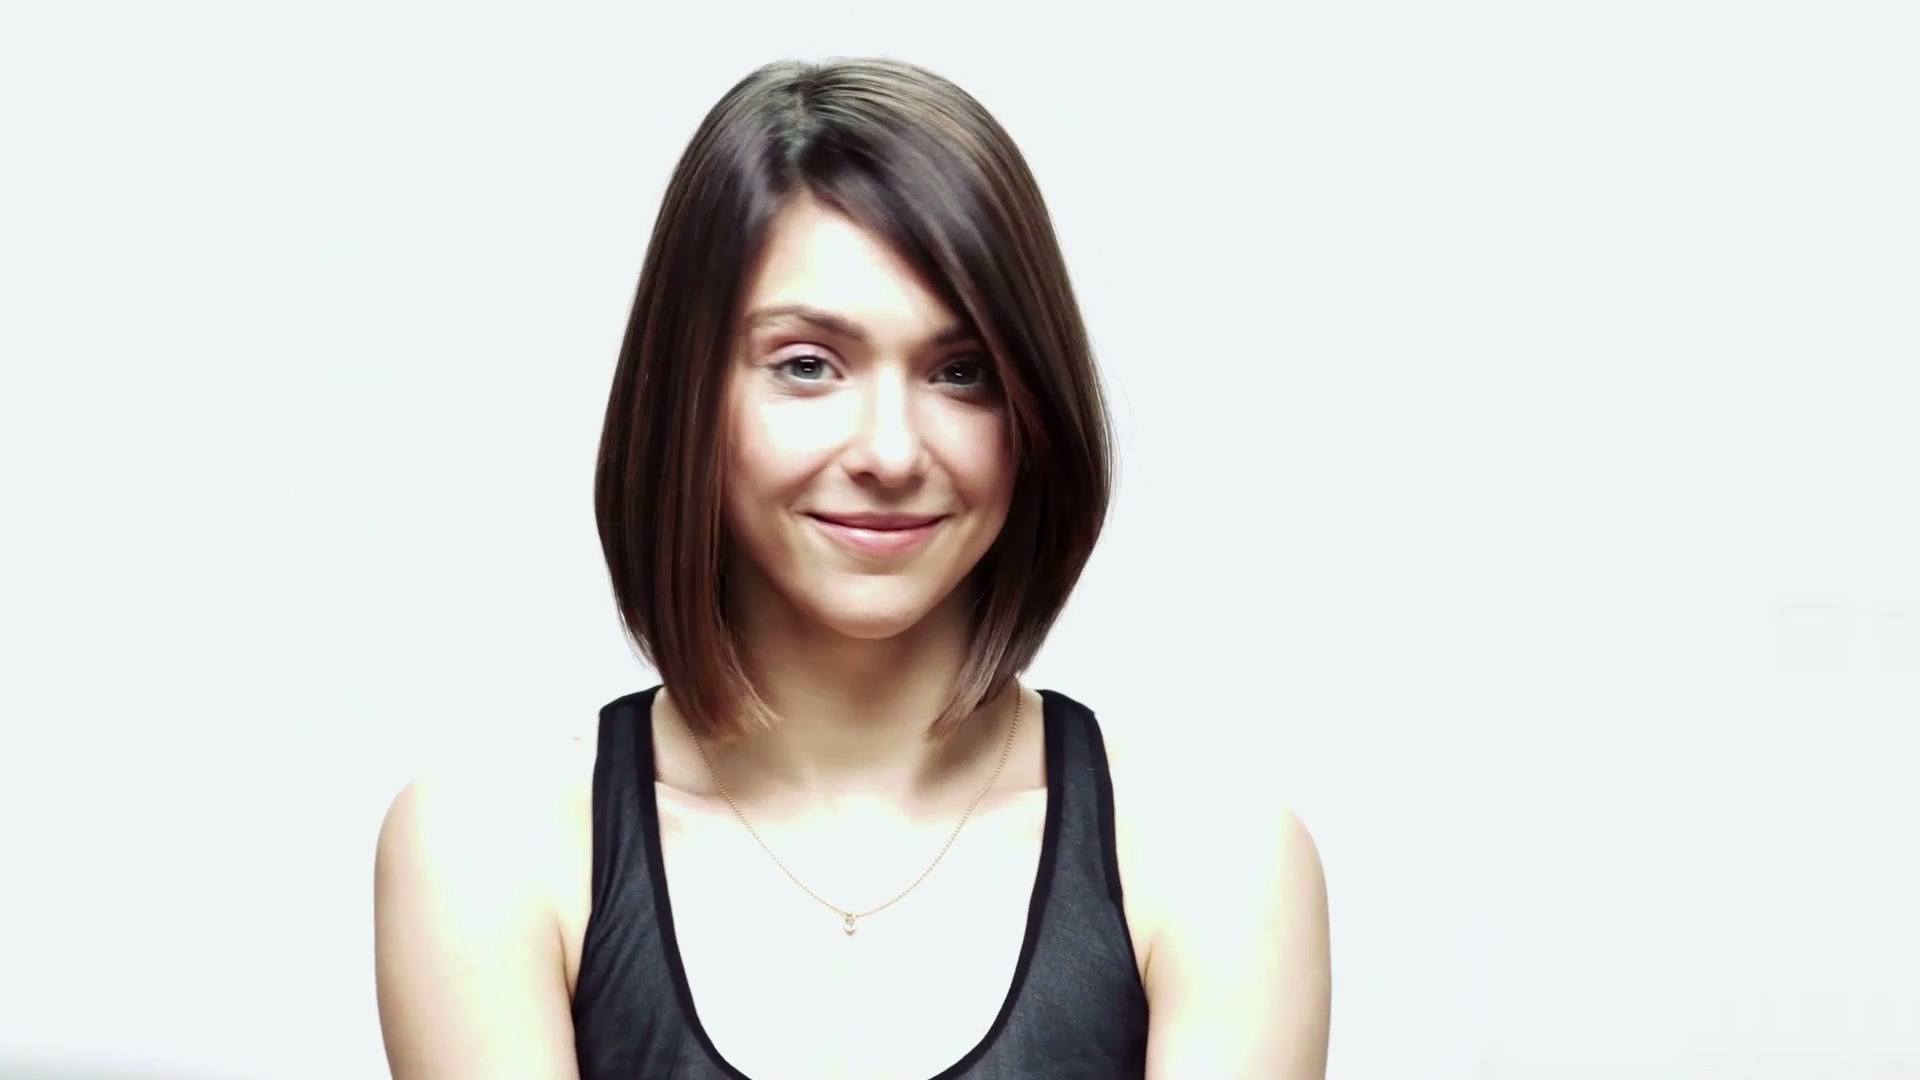 Great Hair Style Ideas For Damaged Hair | Matrix Pertaining To Rebonded Short Hairstyles (View 23 of 25)